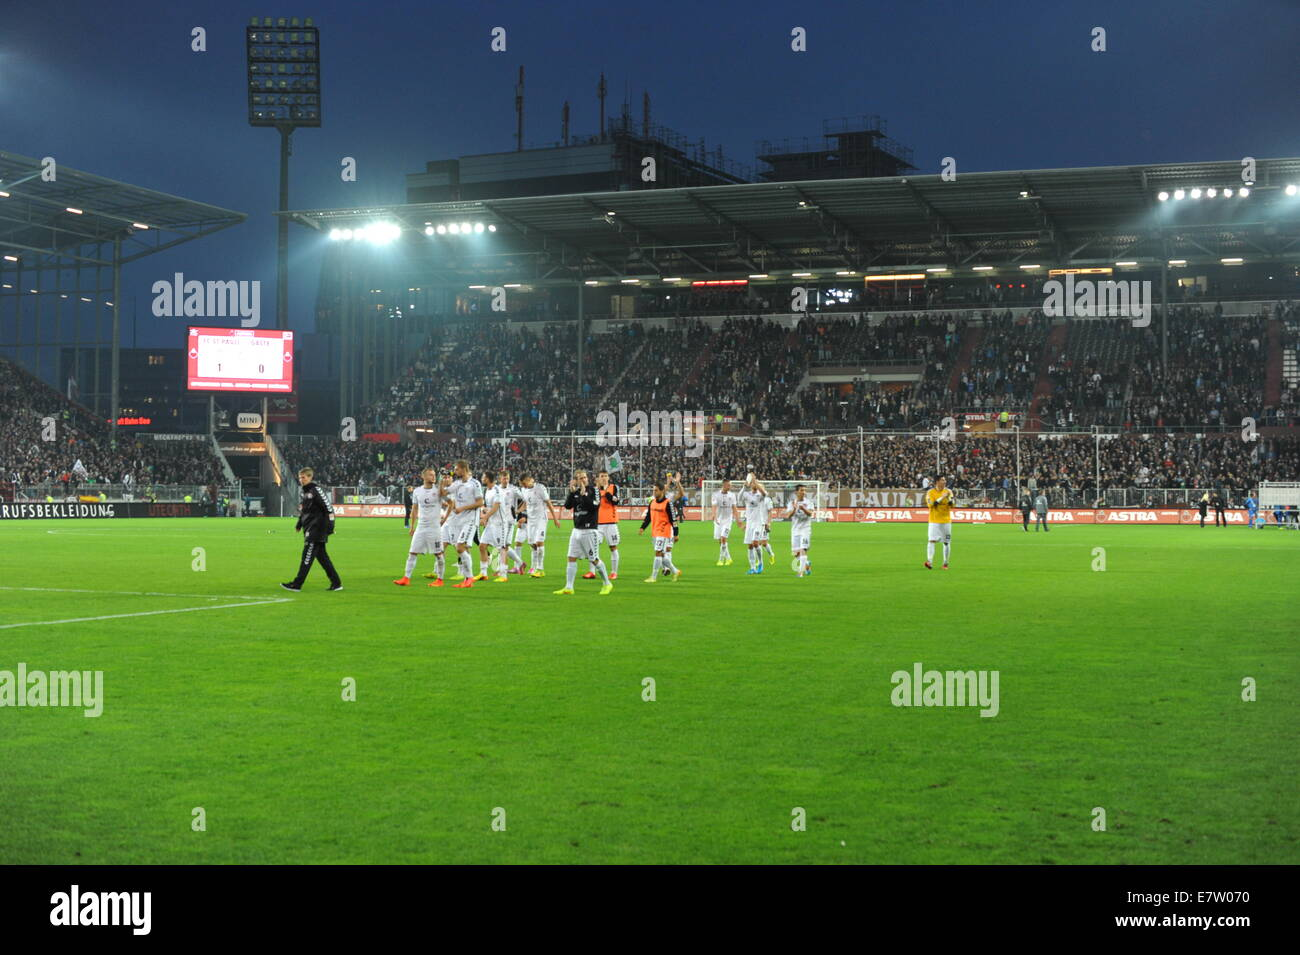 stadion flutlicht stockfotos stadion flutlicht bilder alamy. Black Bedroom Furniture Sets. Home Design Ideas